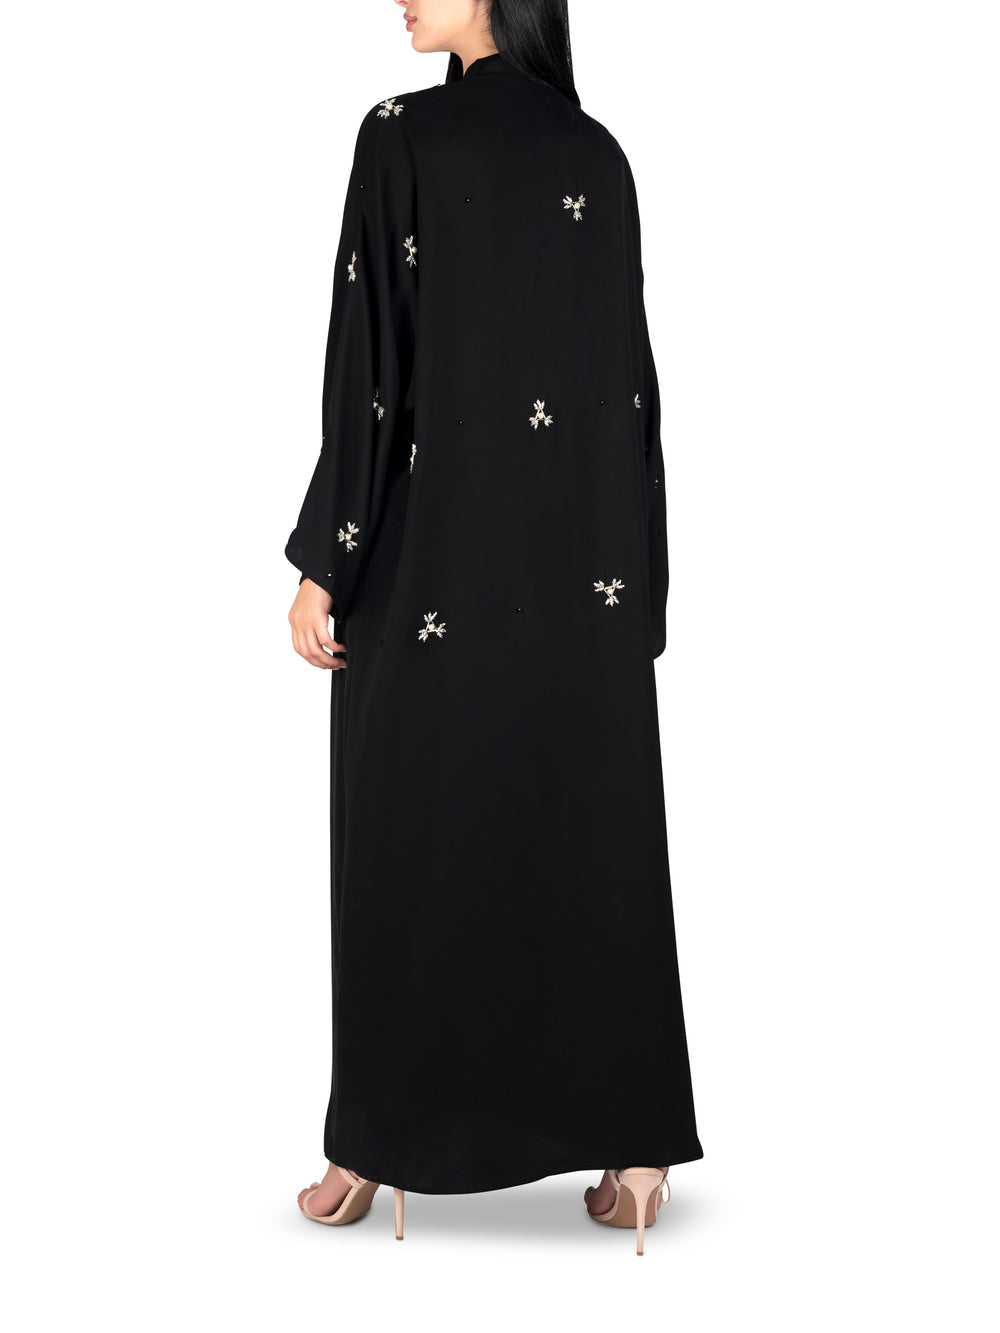 Moonlight Black Abaya